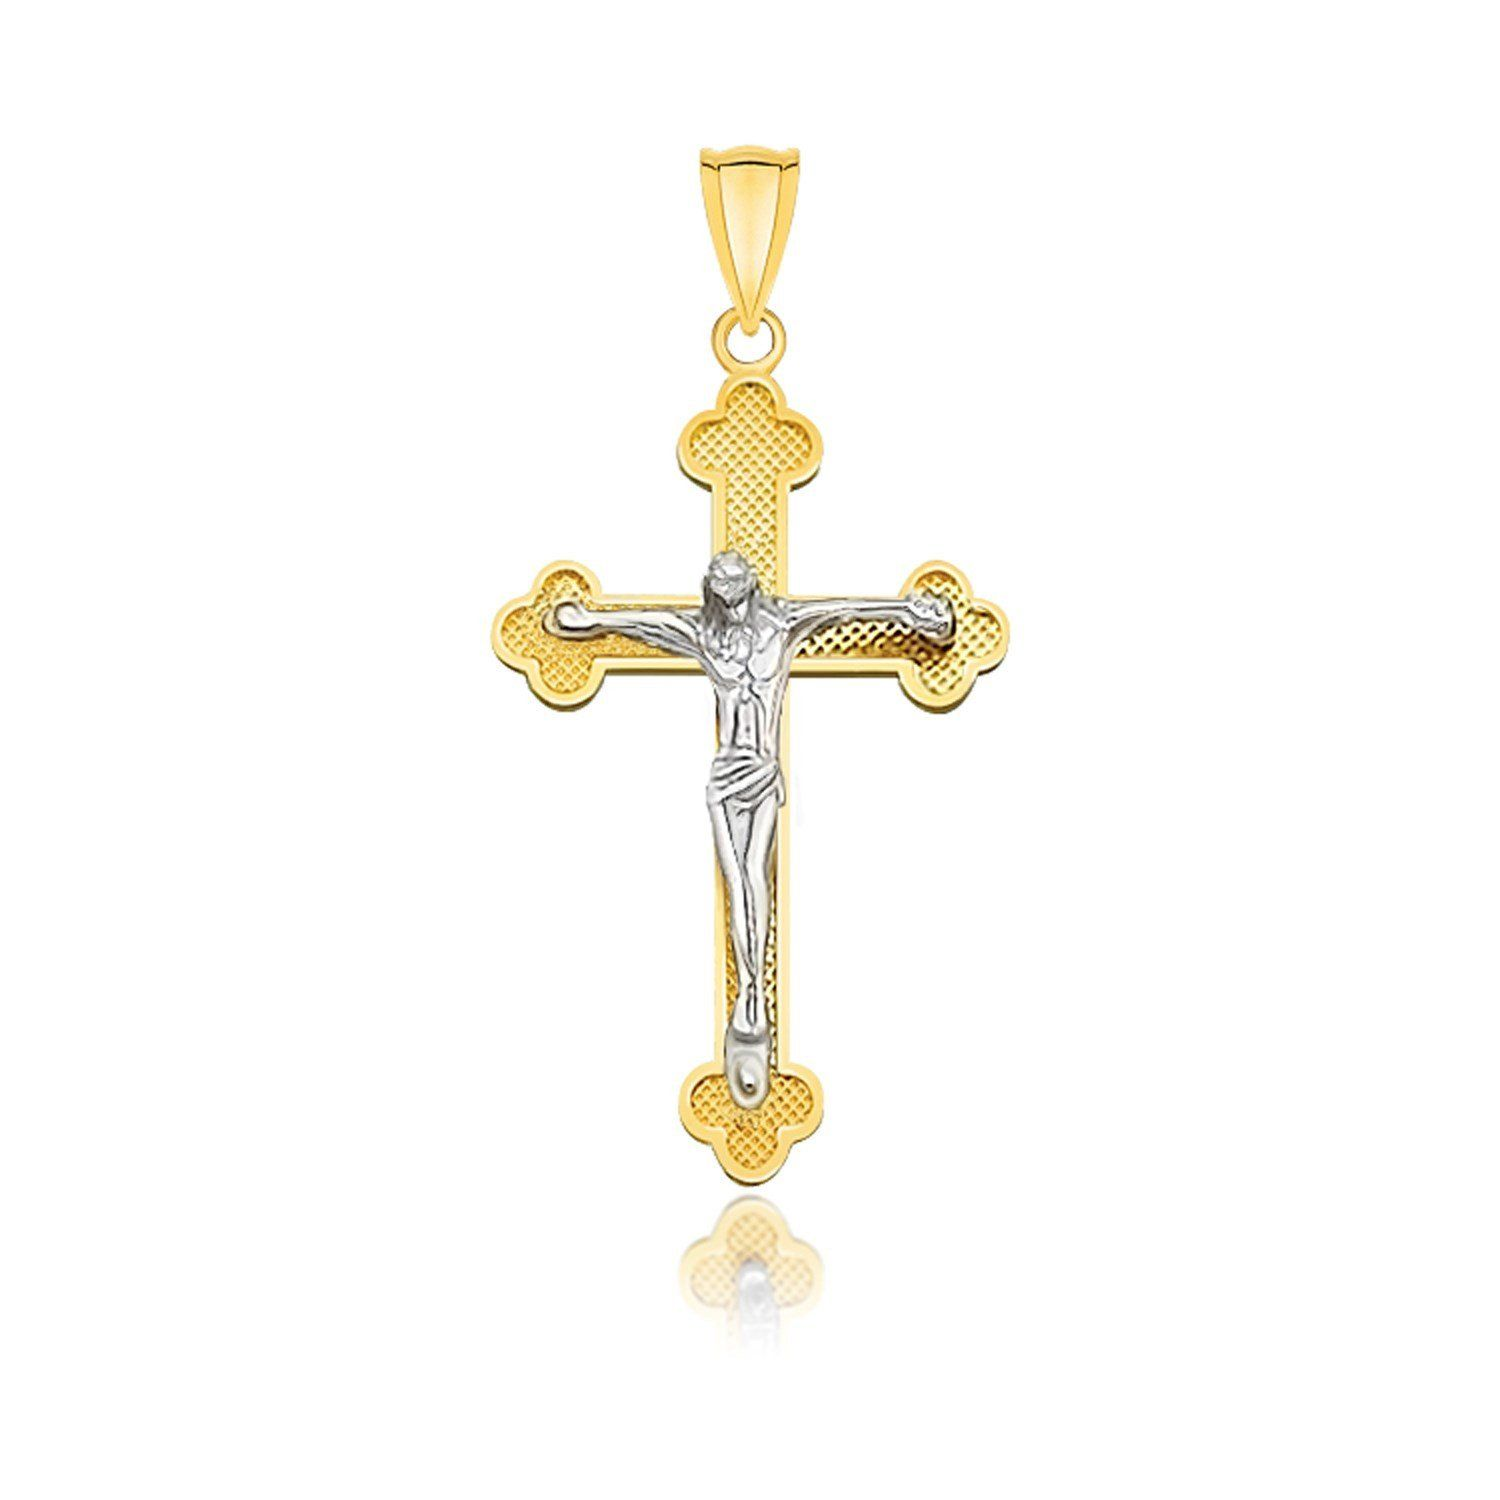 K twotone gold small budded style cross with figure pendant